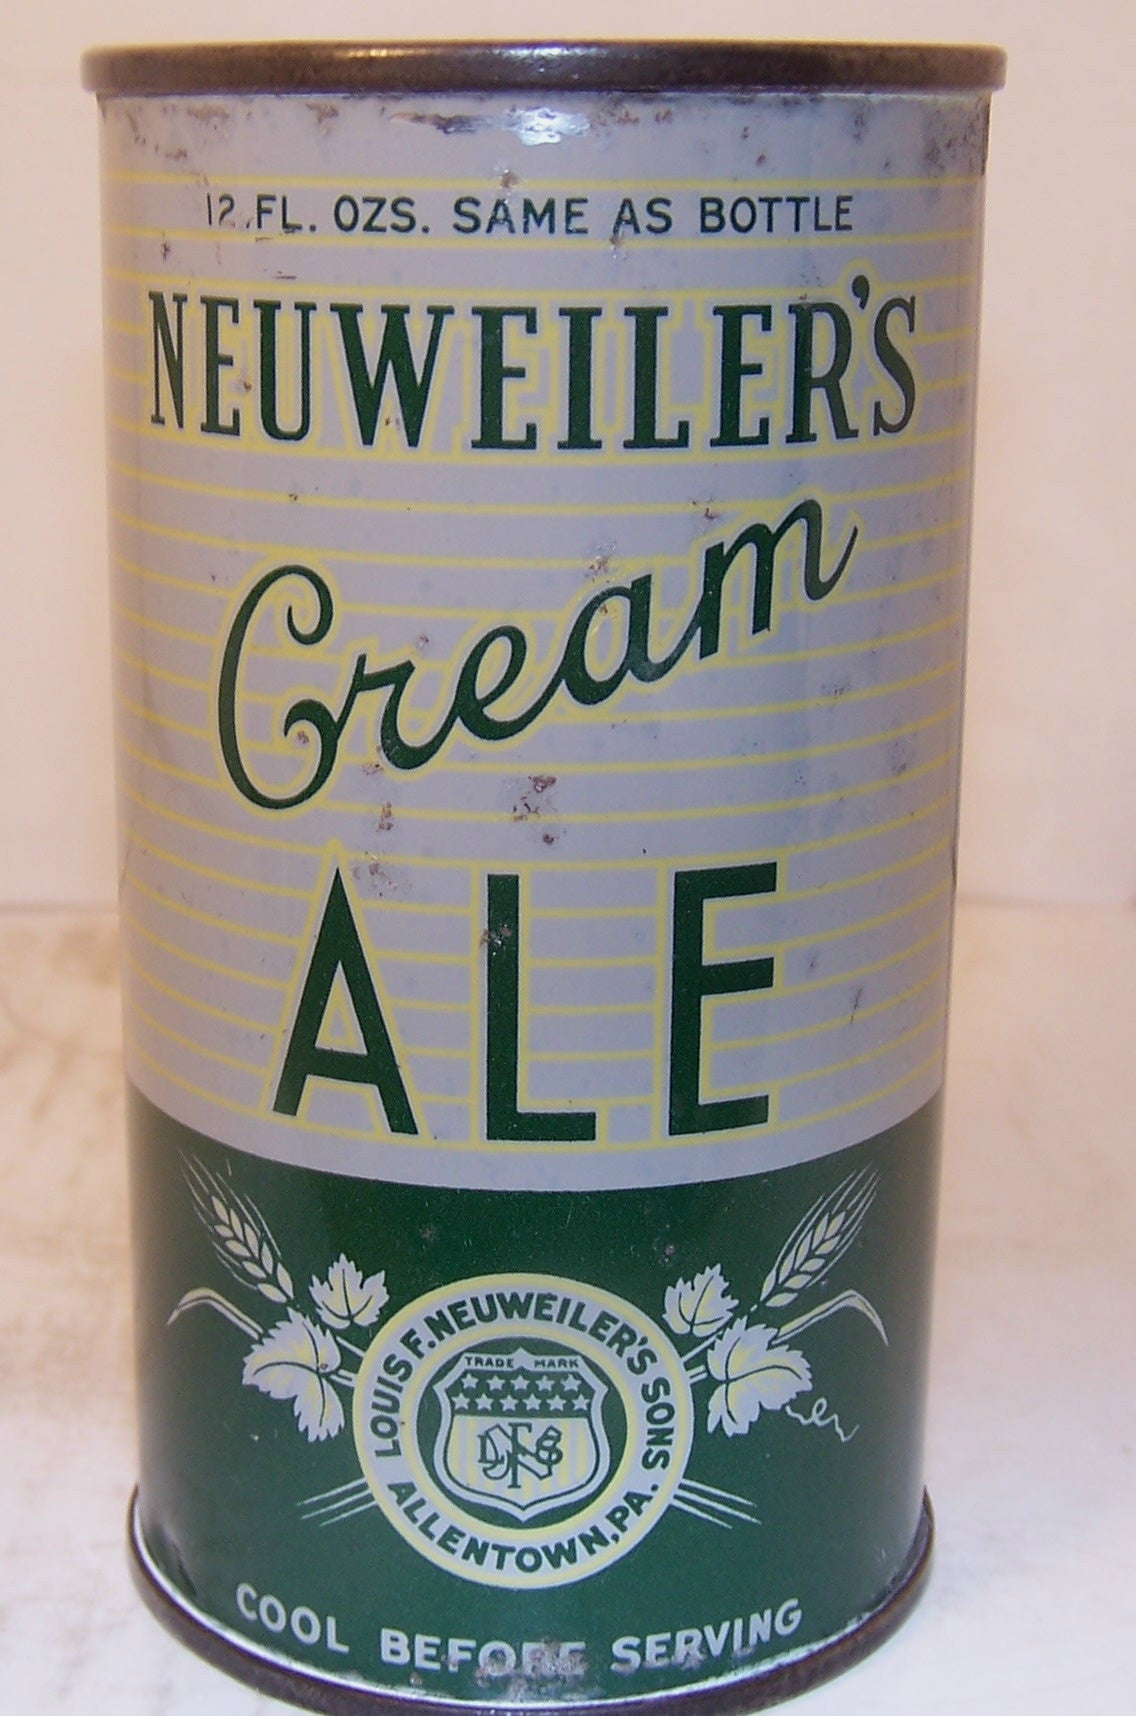 Neuweiler's Cream Ale, (Dull Gray) Lilek page # 561, Grade 1-  Sold on 02/24/20